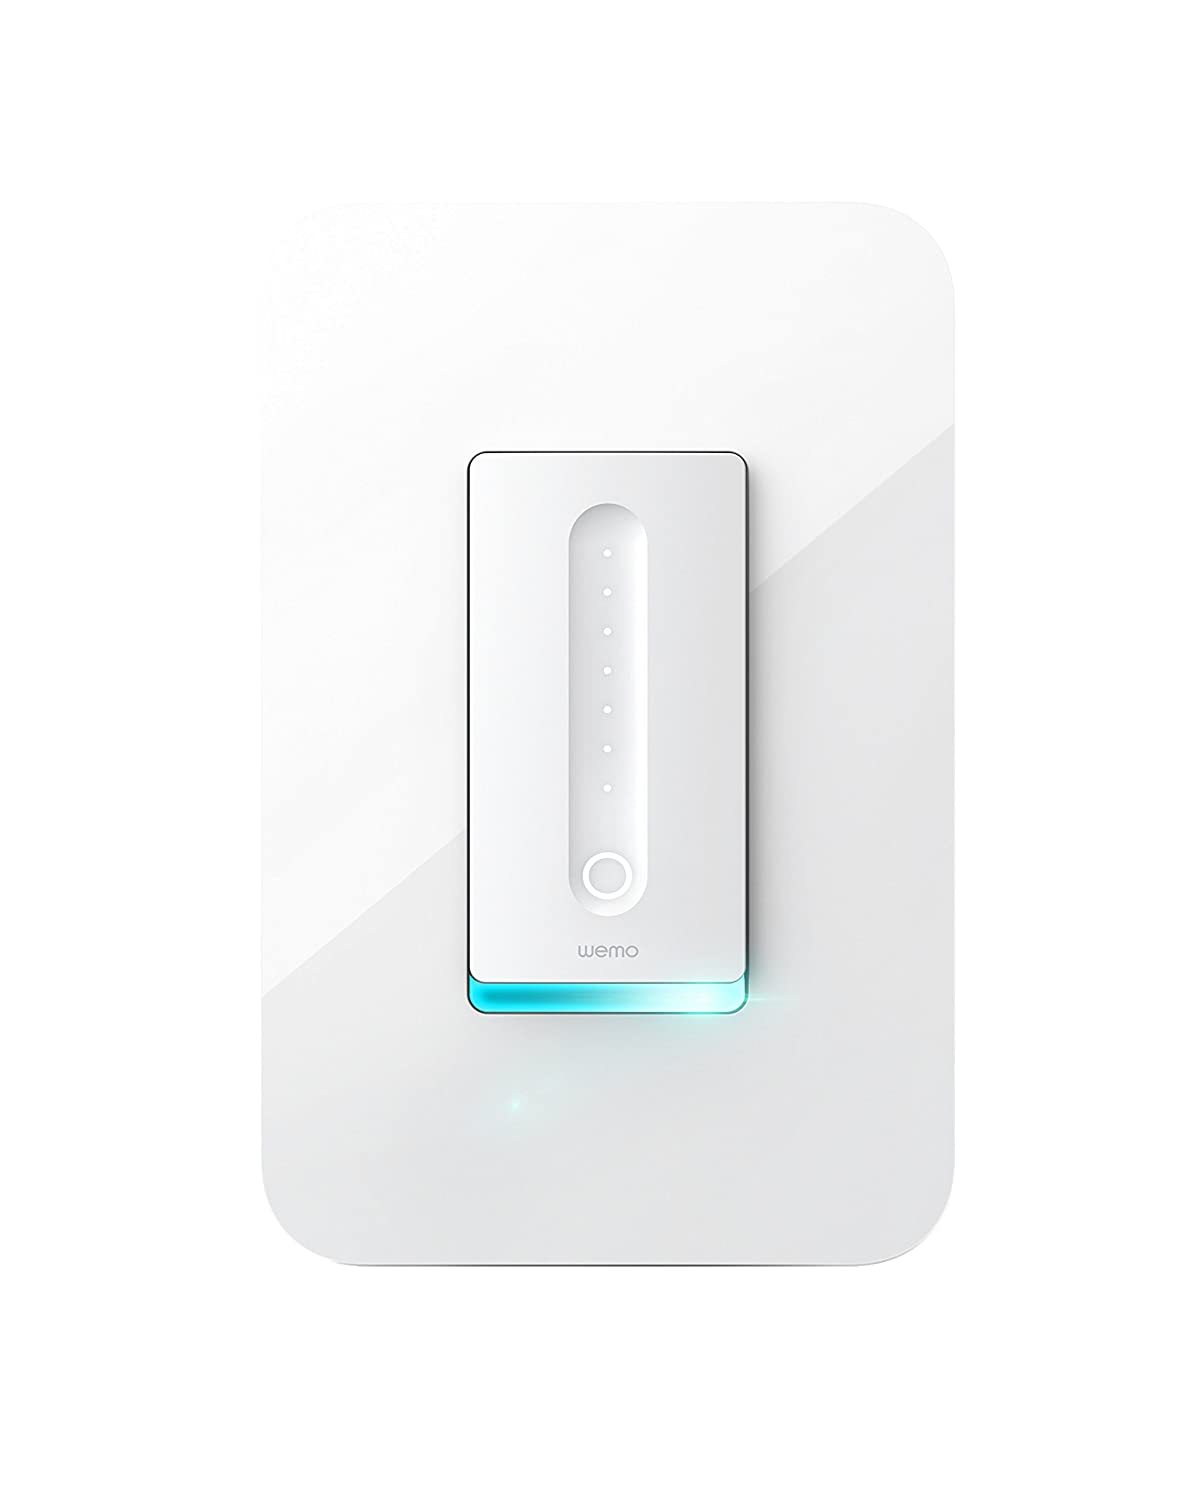 b30763f91e01 Amazon.com  Wemo Dimmer WiFi Light Switch